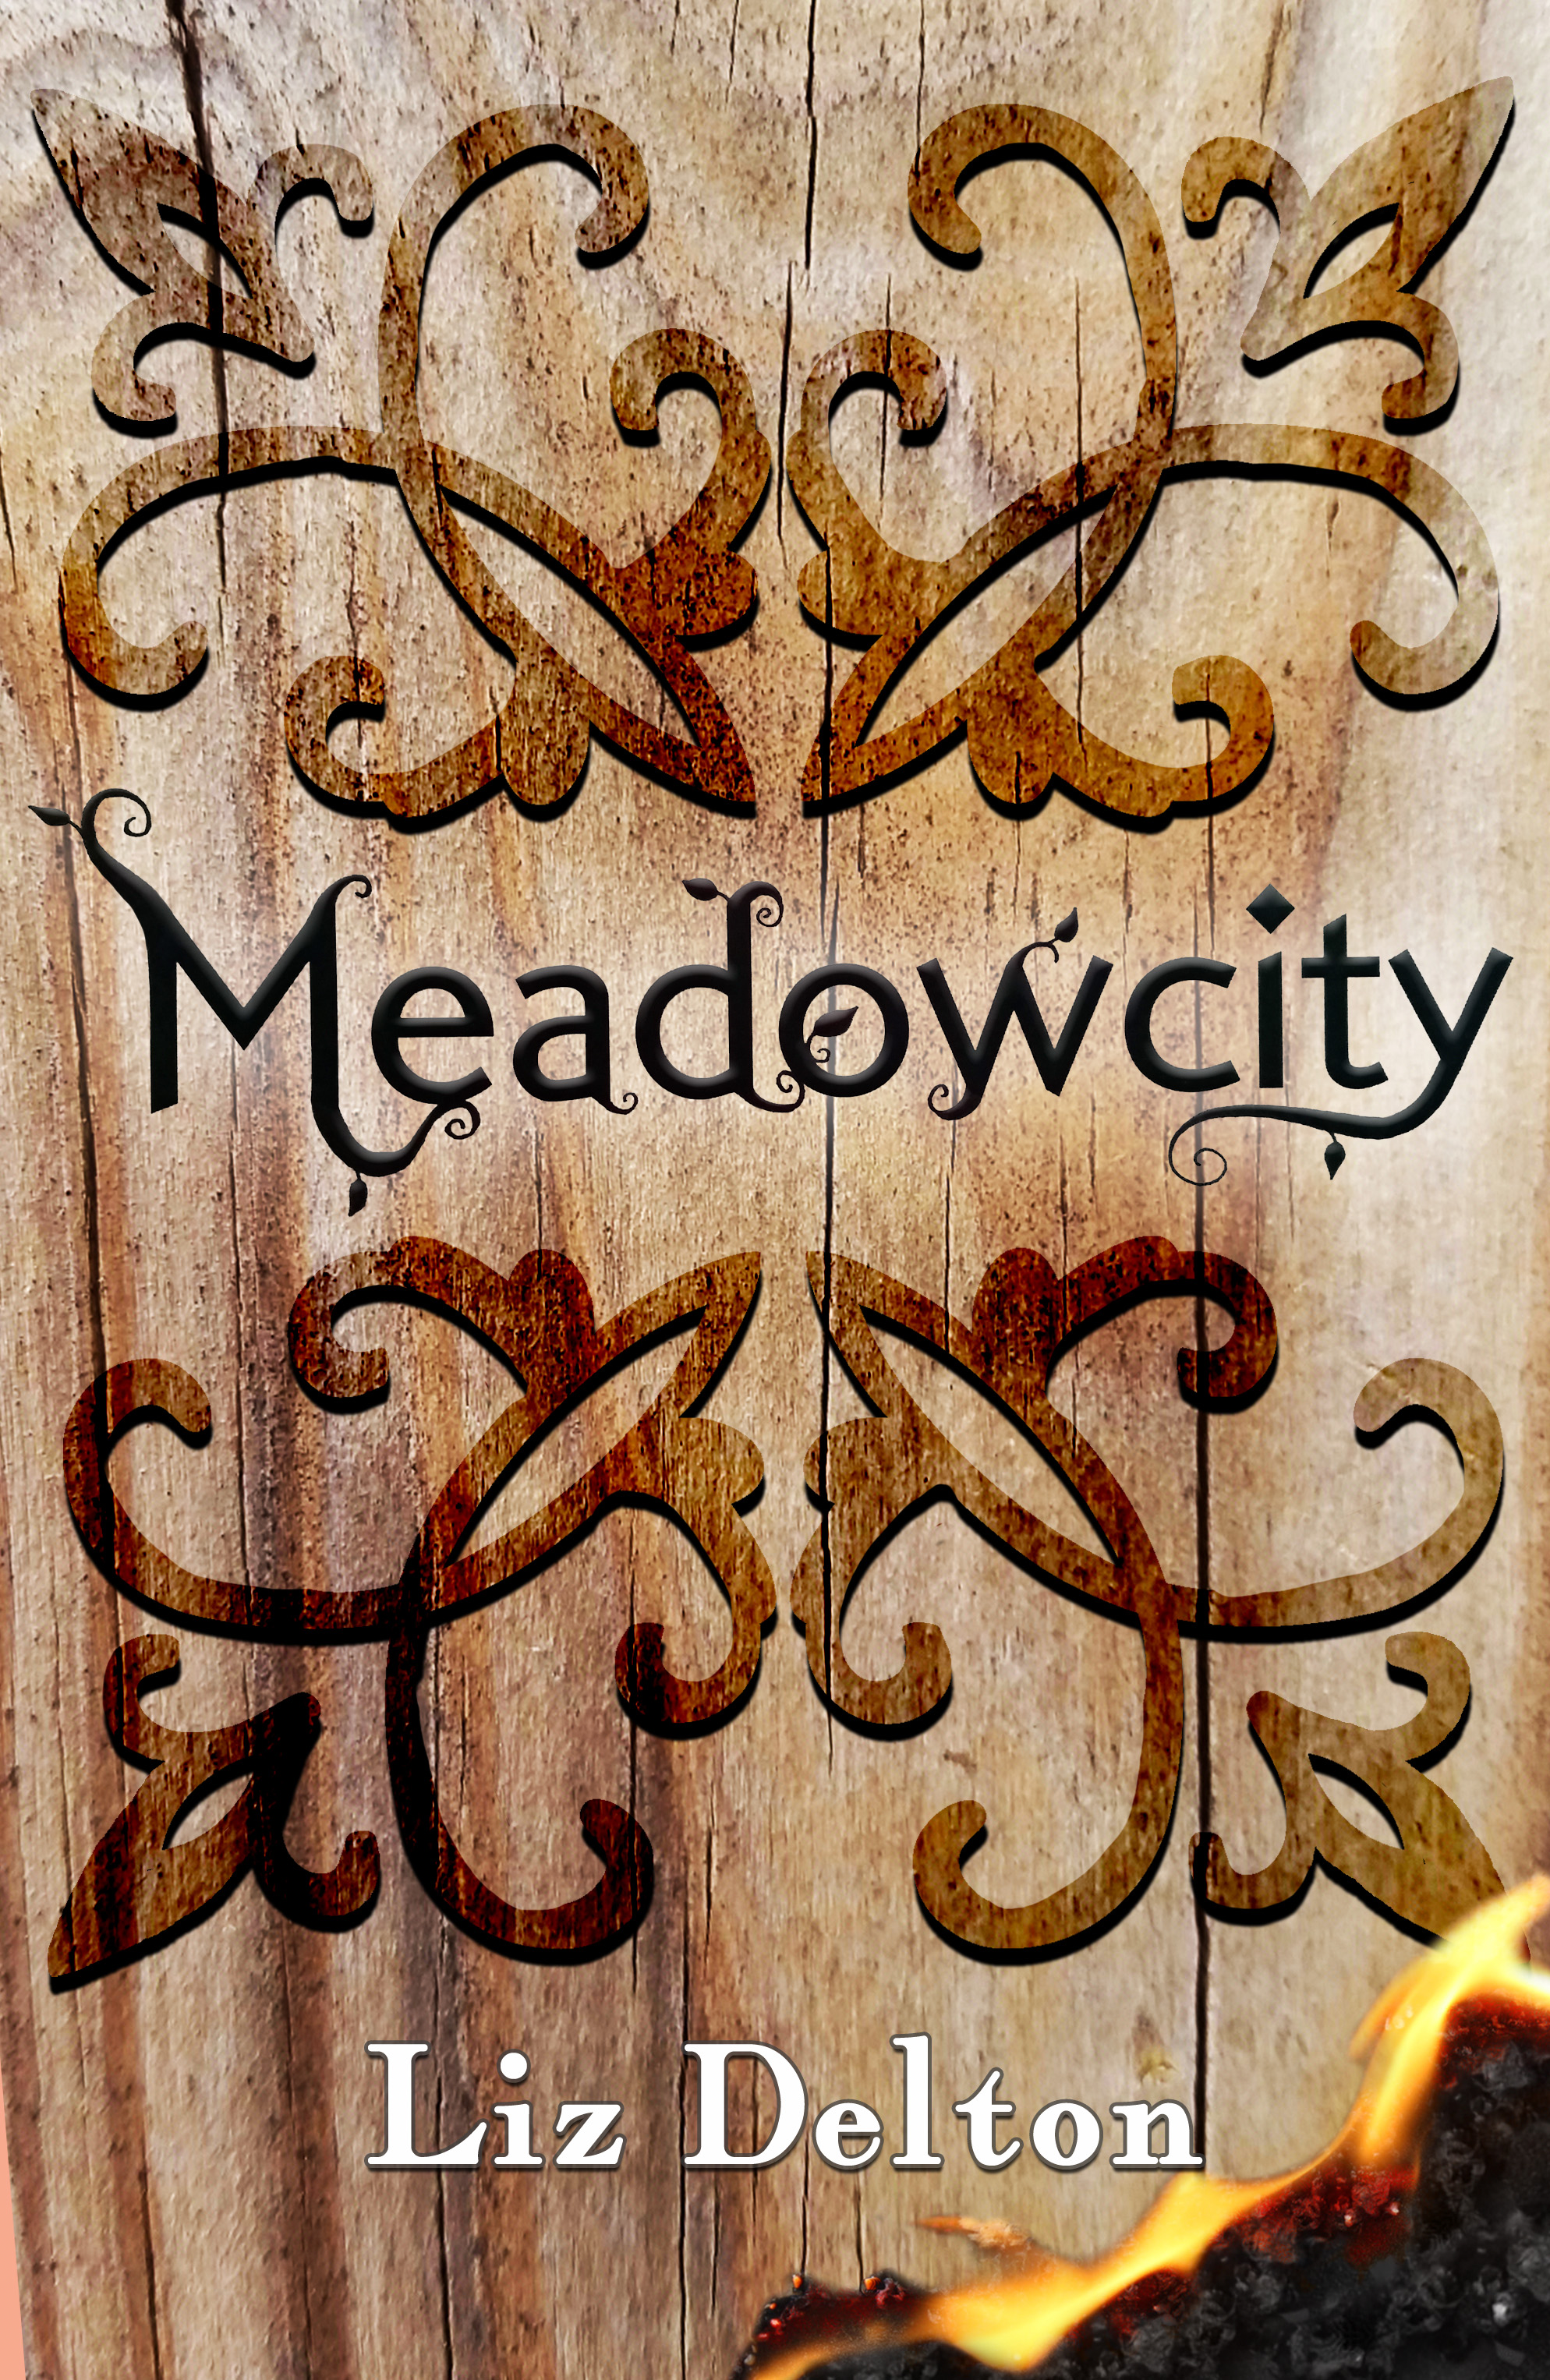 Meadowcity by Liz Delton